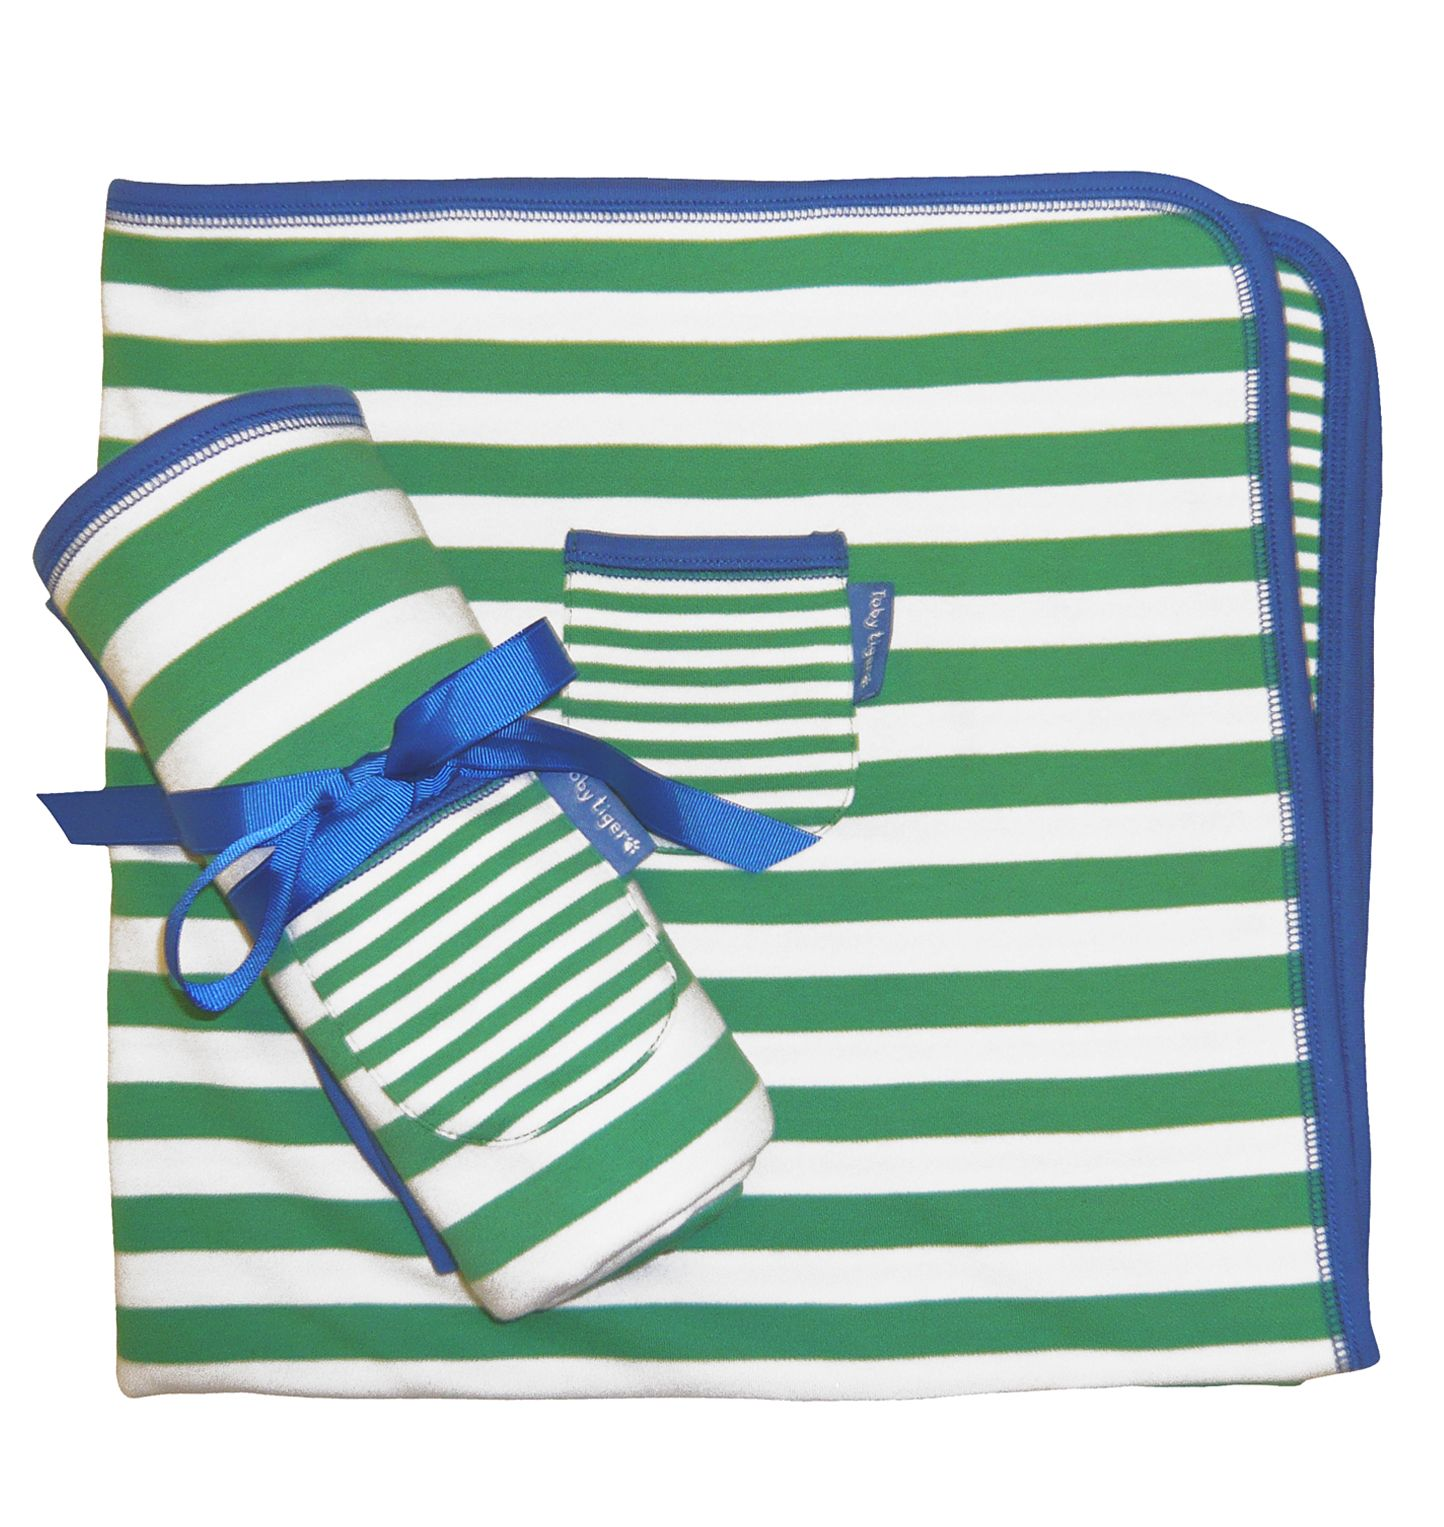 Toby Tiger Boys organic cotton green blanket, Green